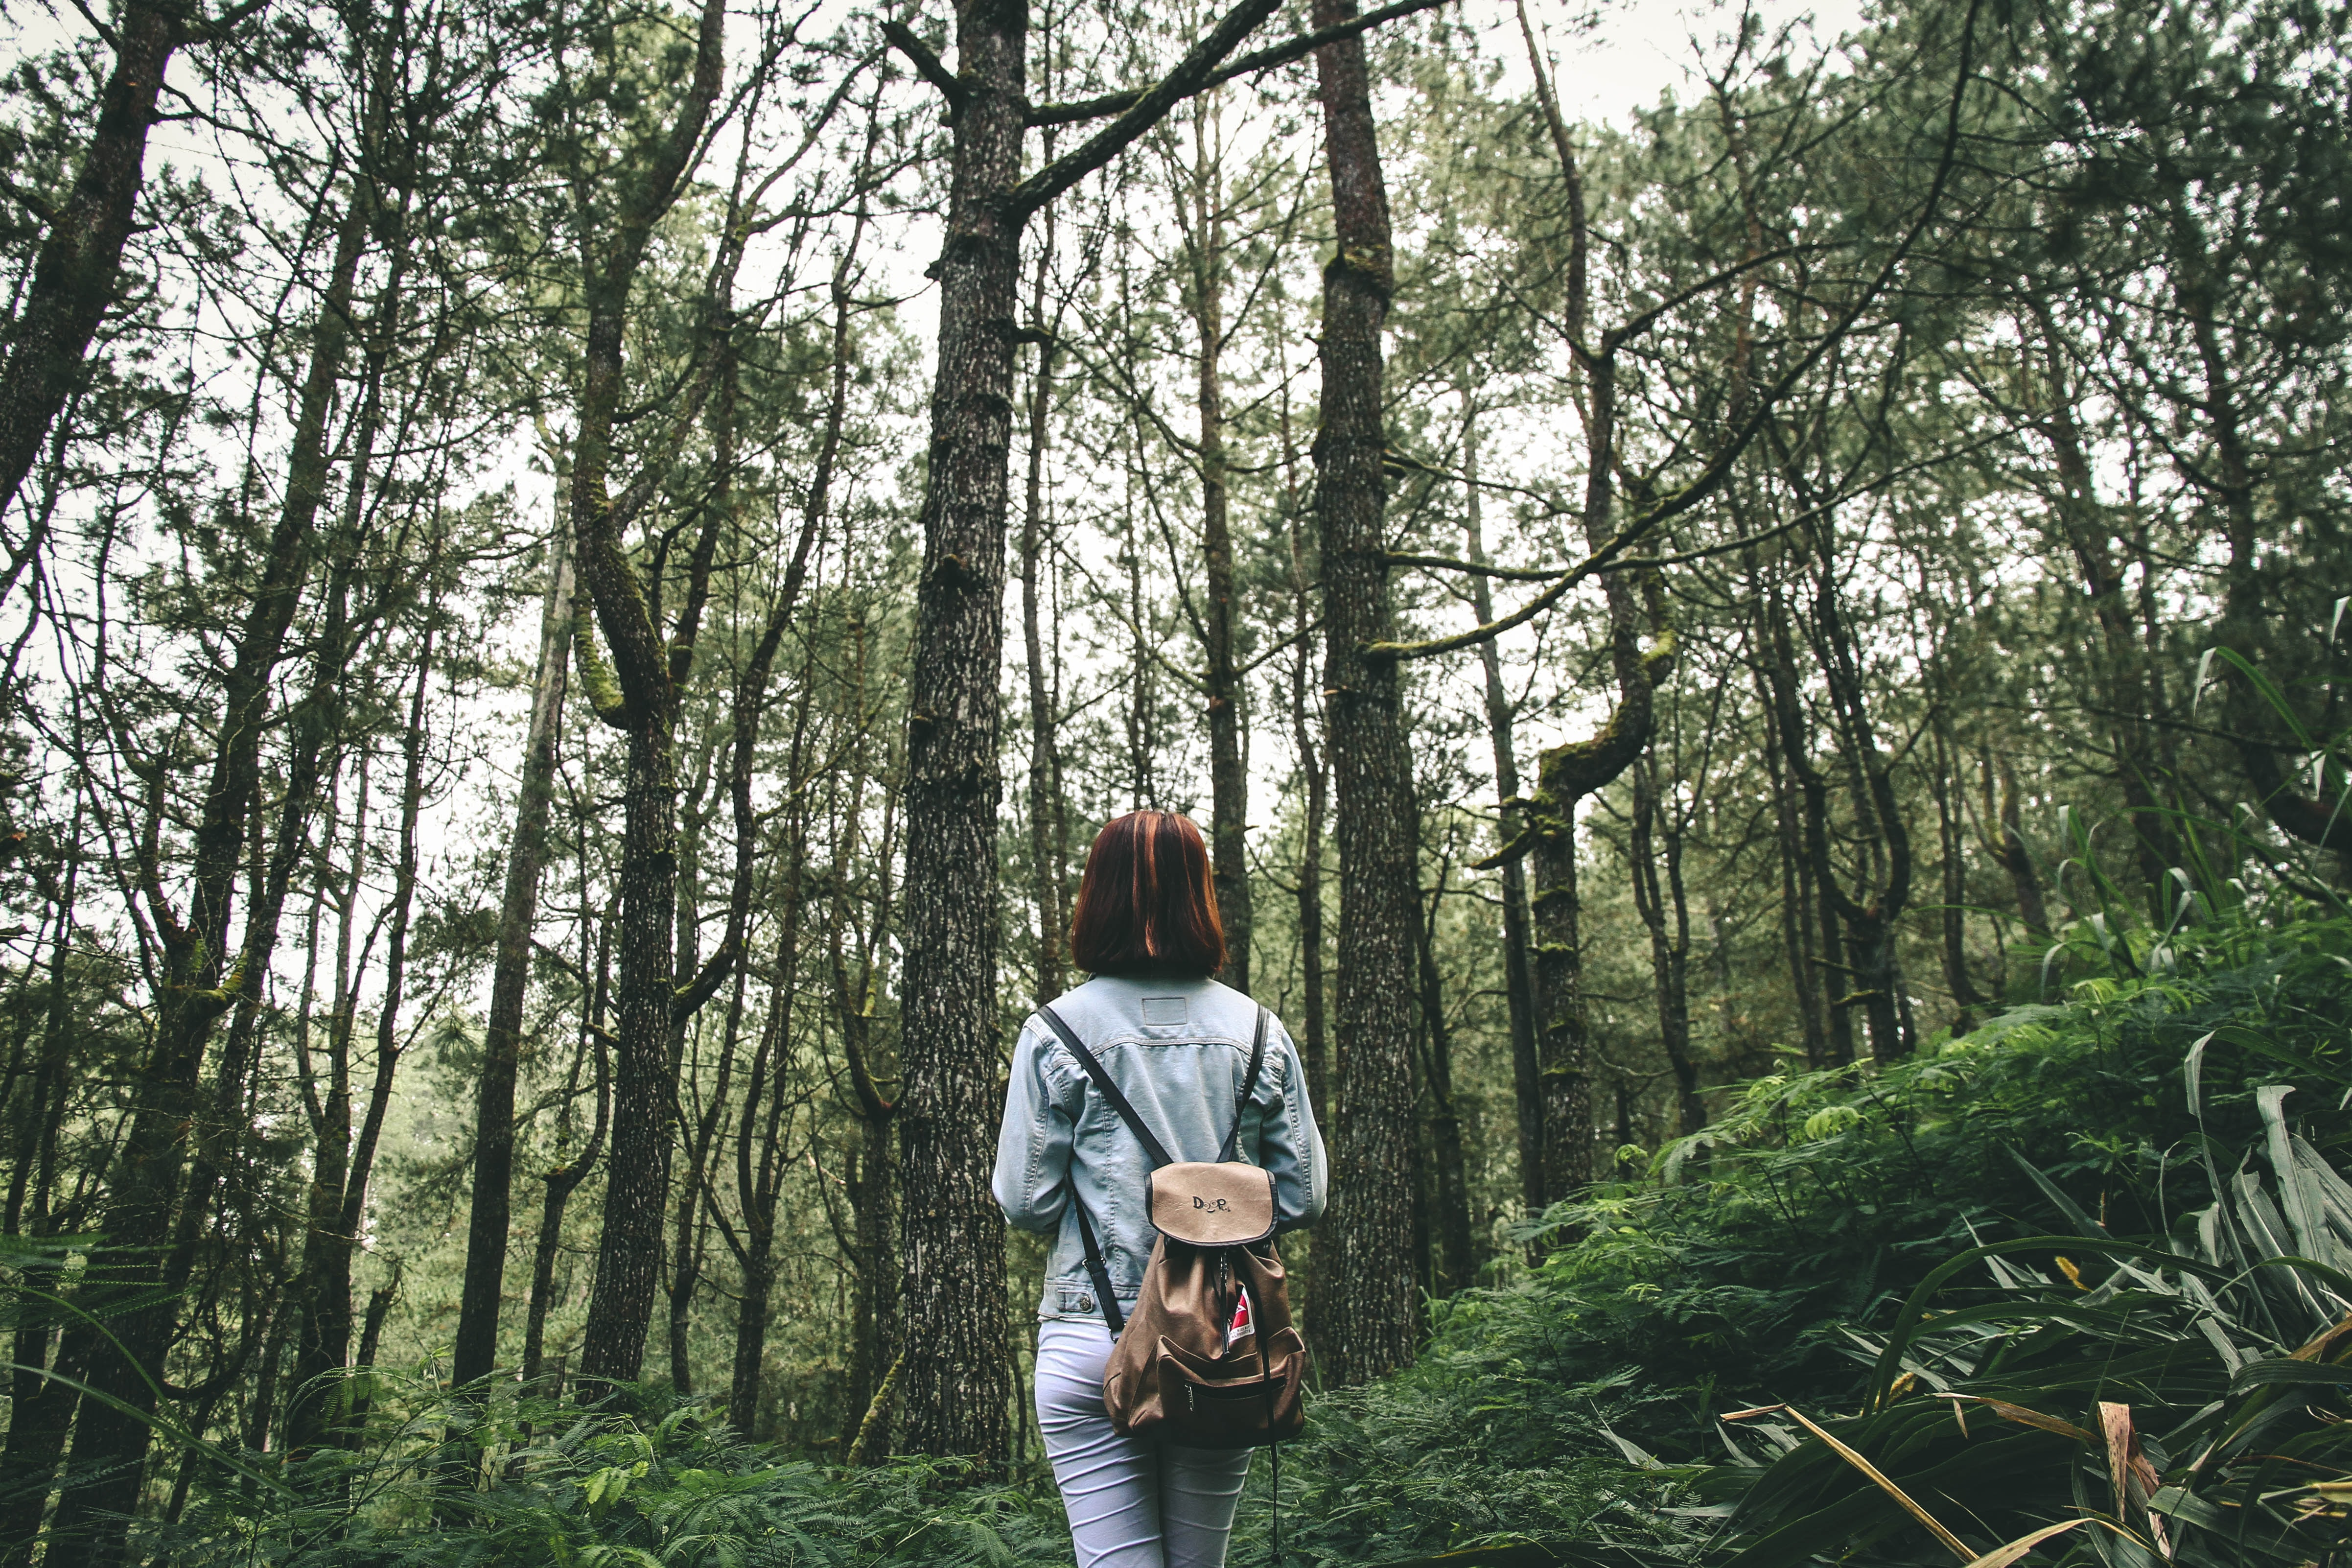 woman surrounded by brown and green tall trees during daytime